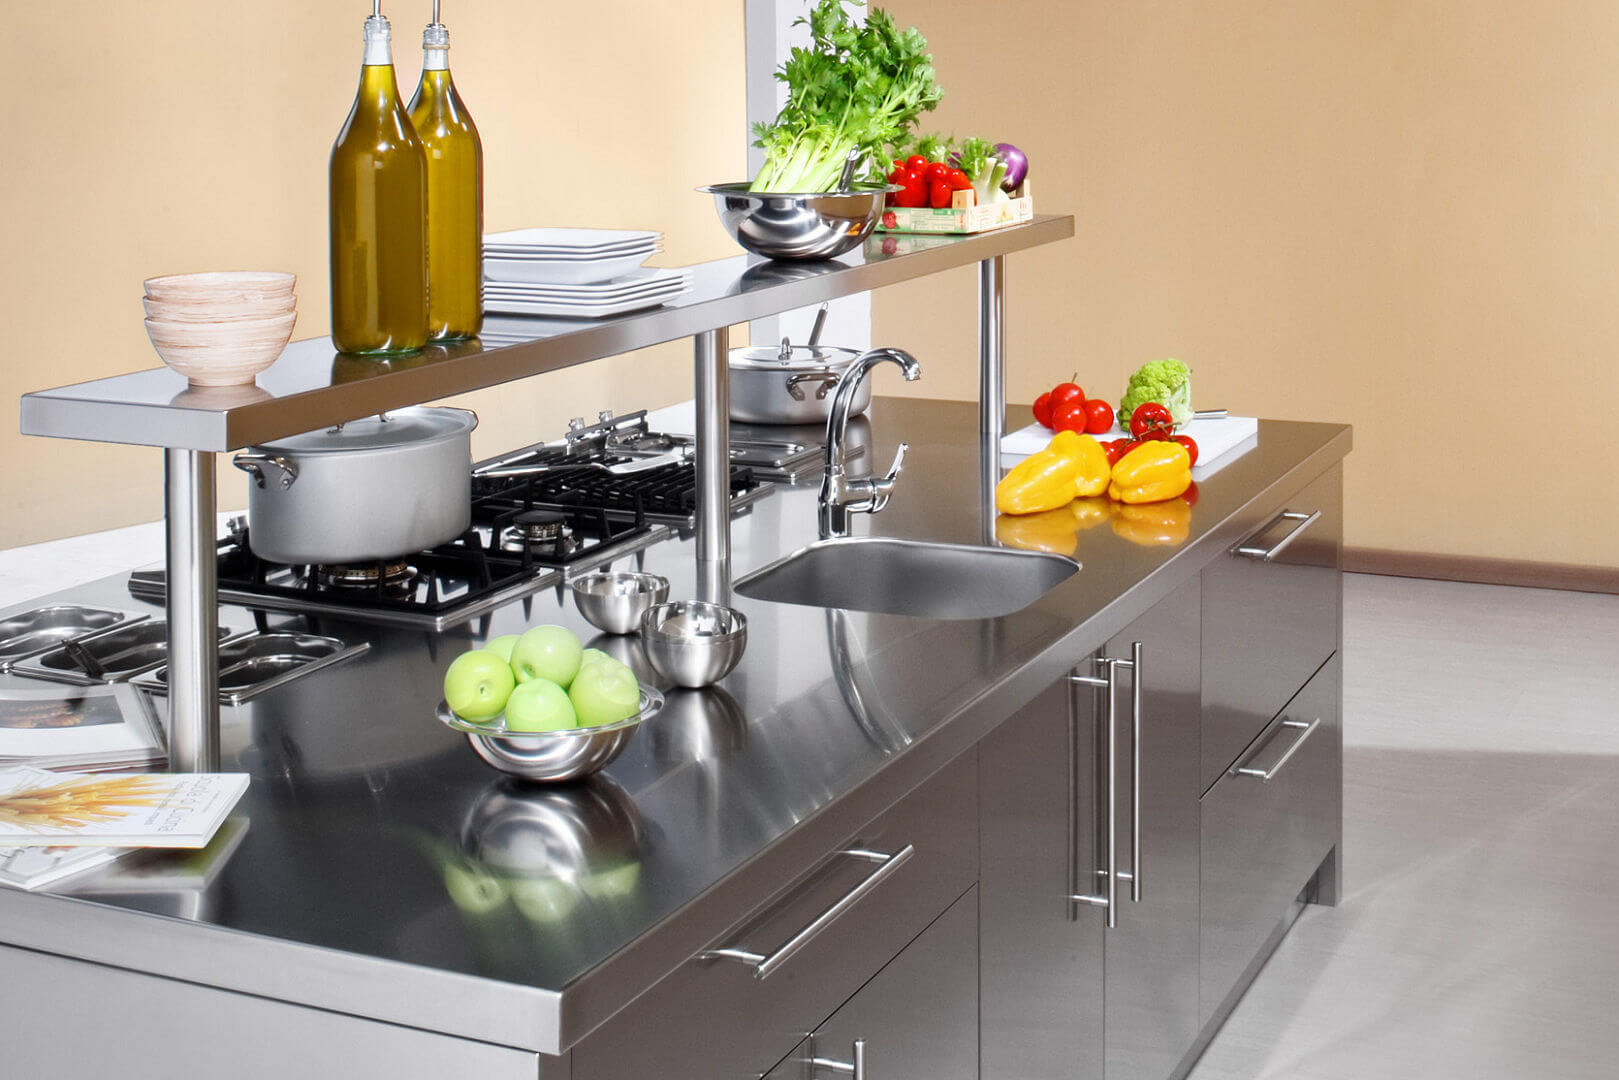 Arca Cucine Italy - Domestic stainless steel kitchens - Workstation - Wash